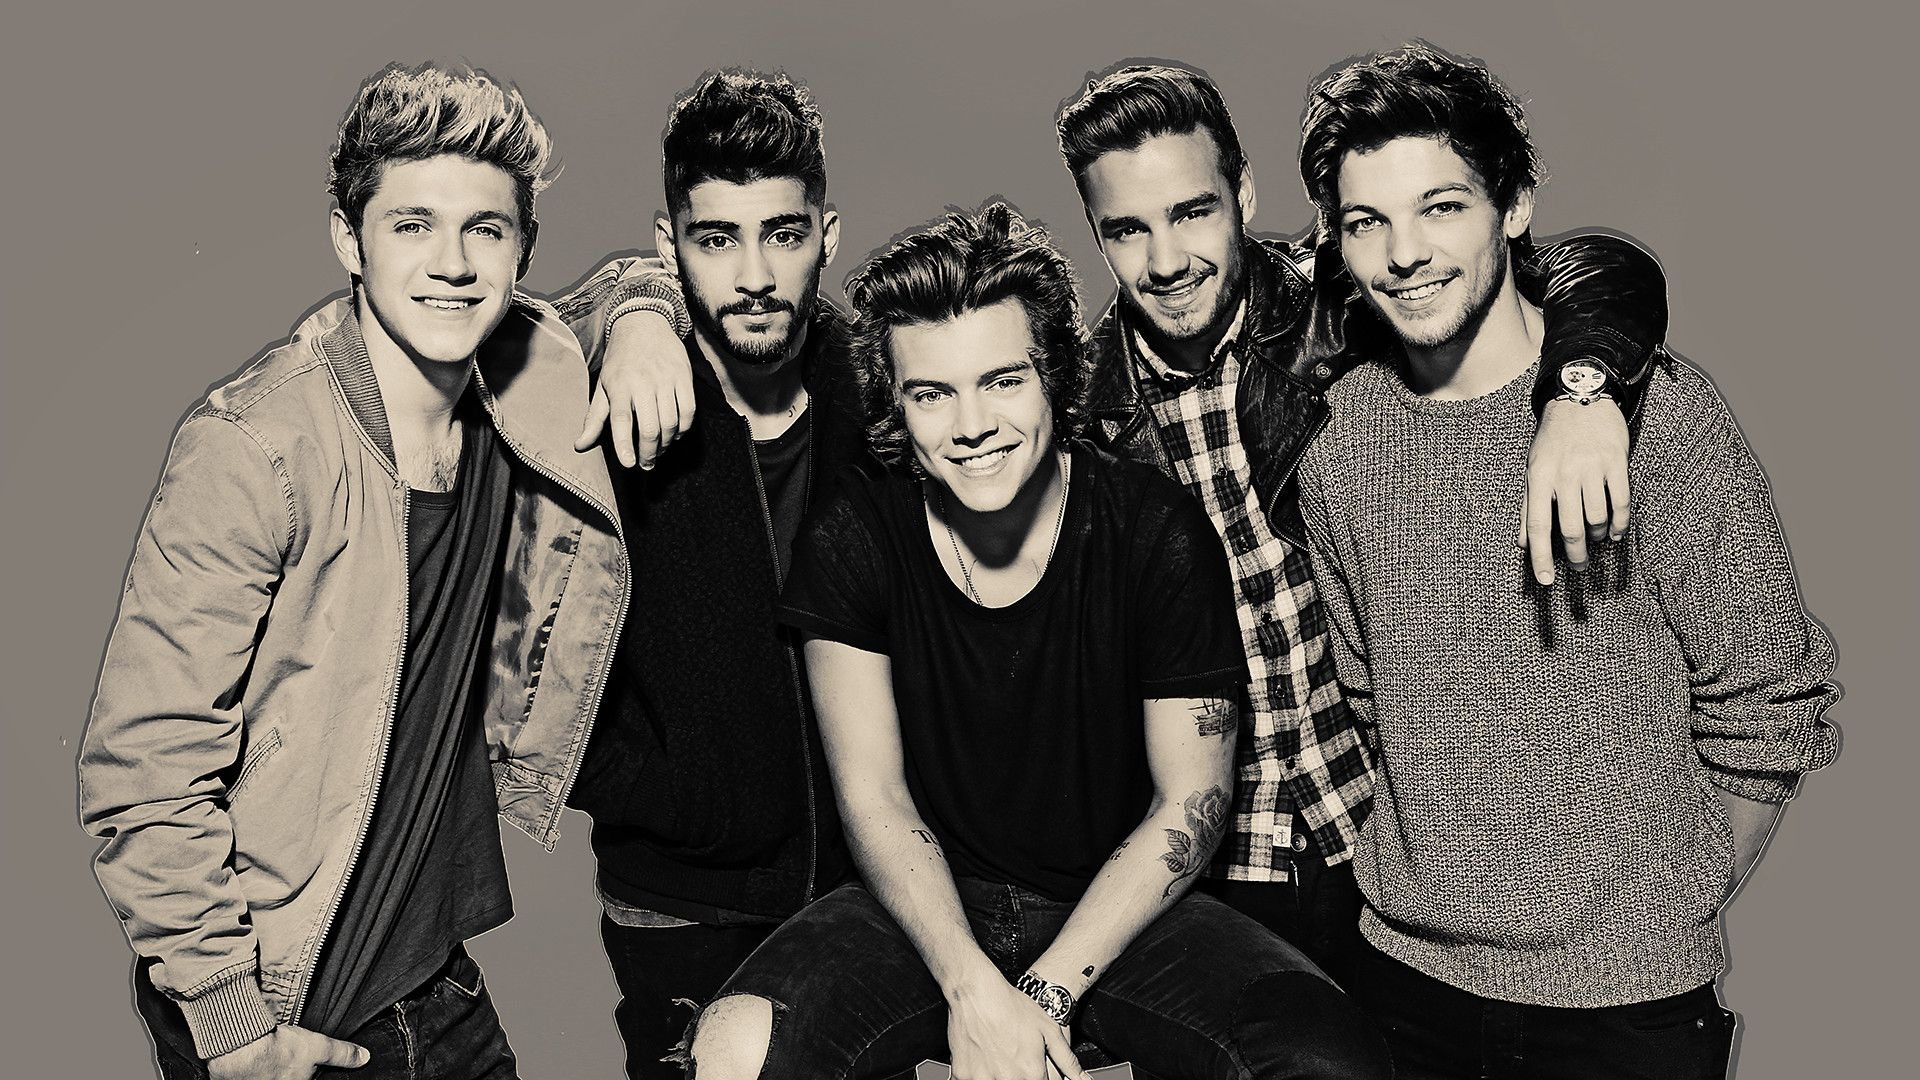 Black And White One Direction Laptop Wallpapers Top Free Black And White One Direction Laptop Backgrounds Wallpaperaccess If you are looking for one direction aesthetic you've come to the right place. white one direction laptop wallpapers